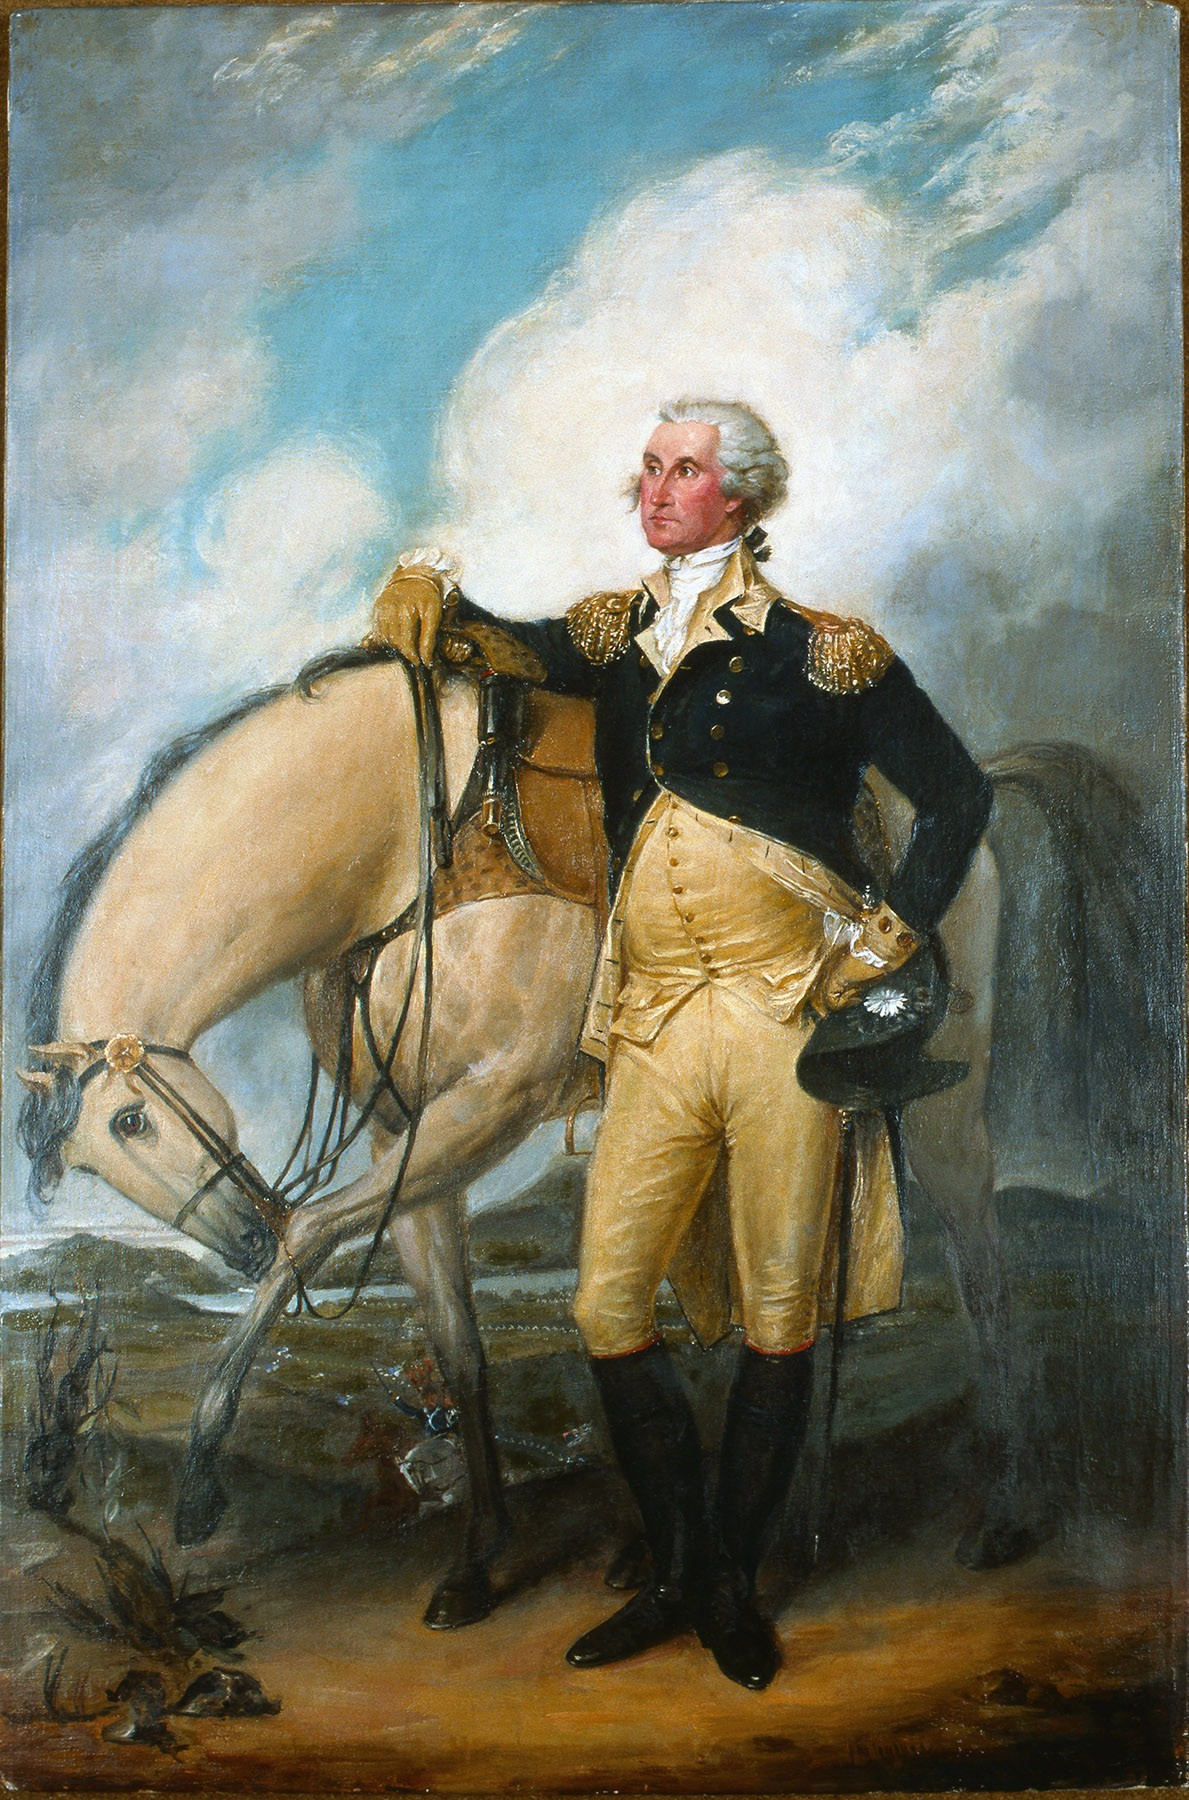 an analysis of the characteristics of the paintings of george washington George washington (lansdowne portrait of george washington)  to german town with mrs washington to see mr stuarts paintings  description and analysis.